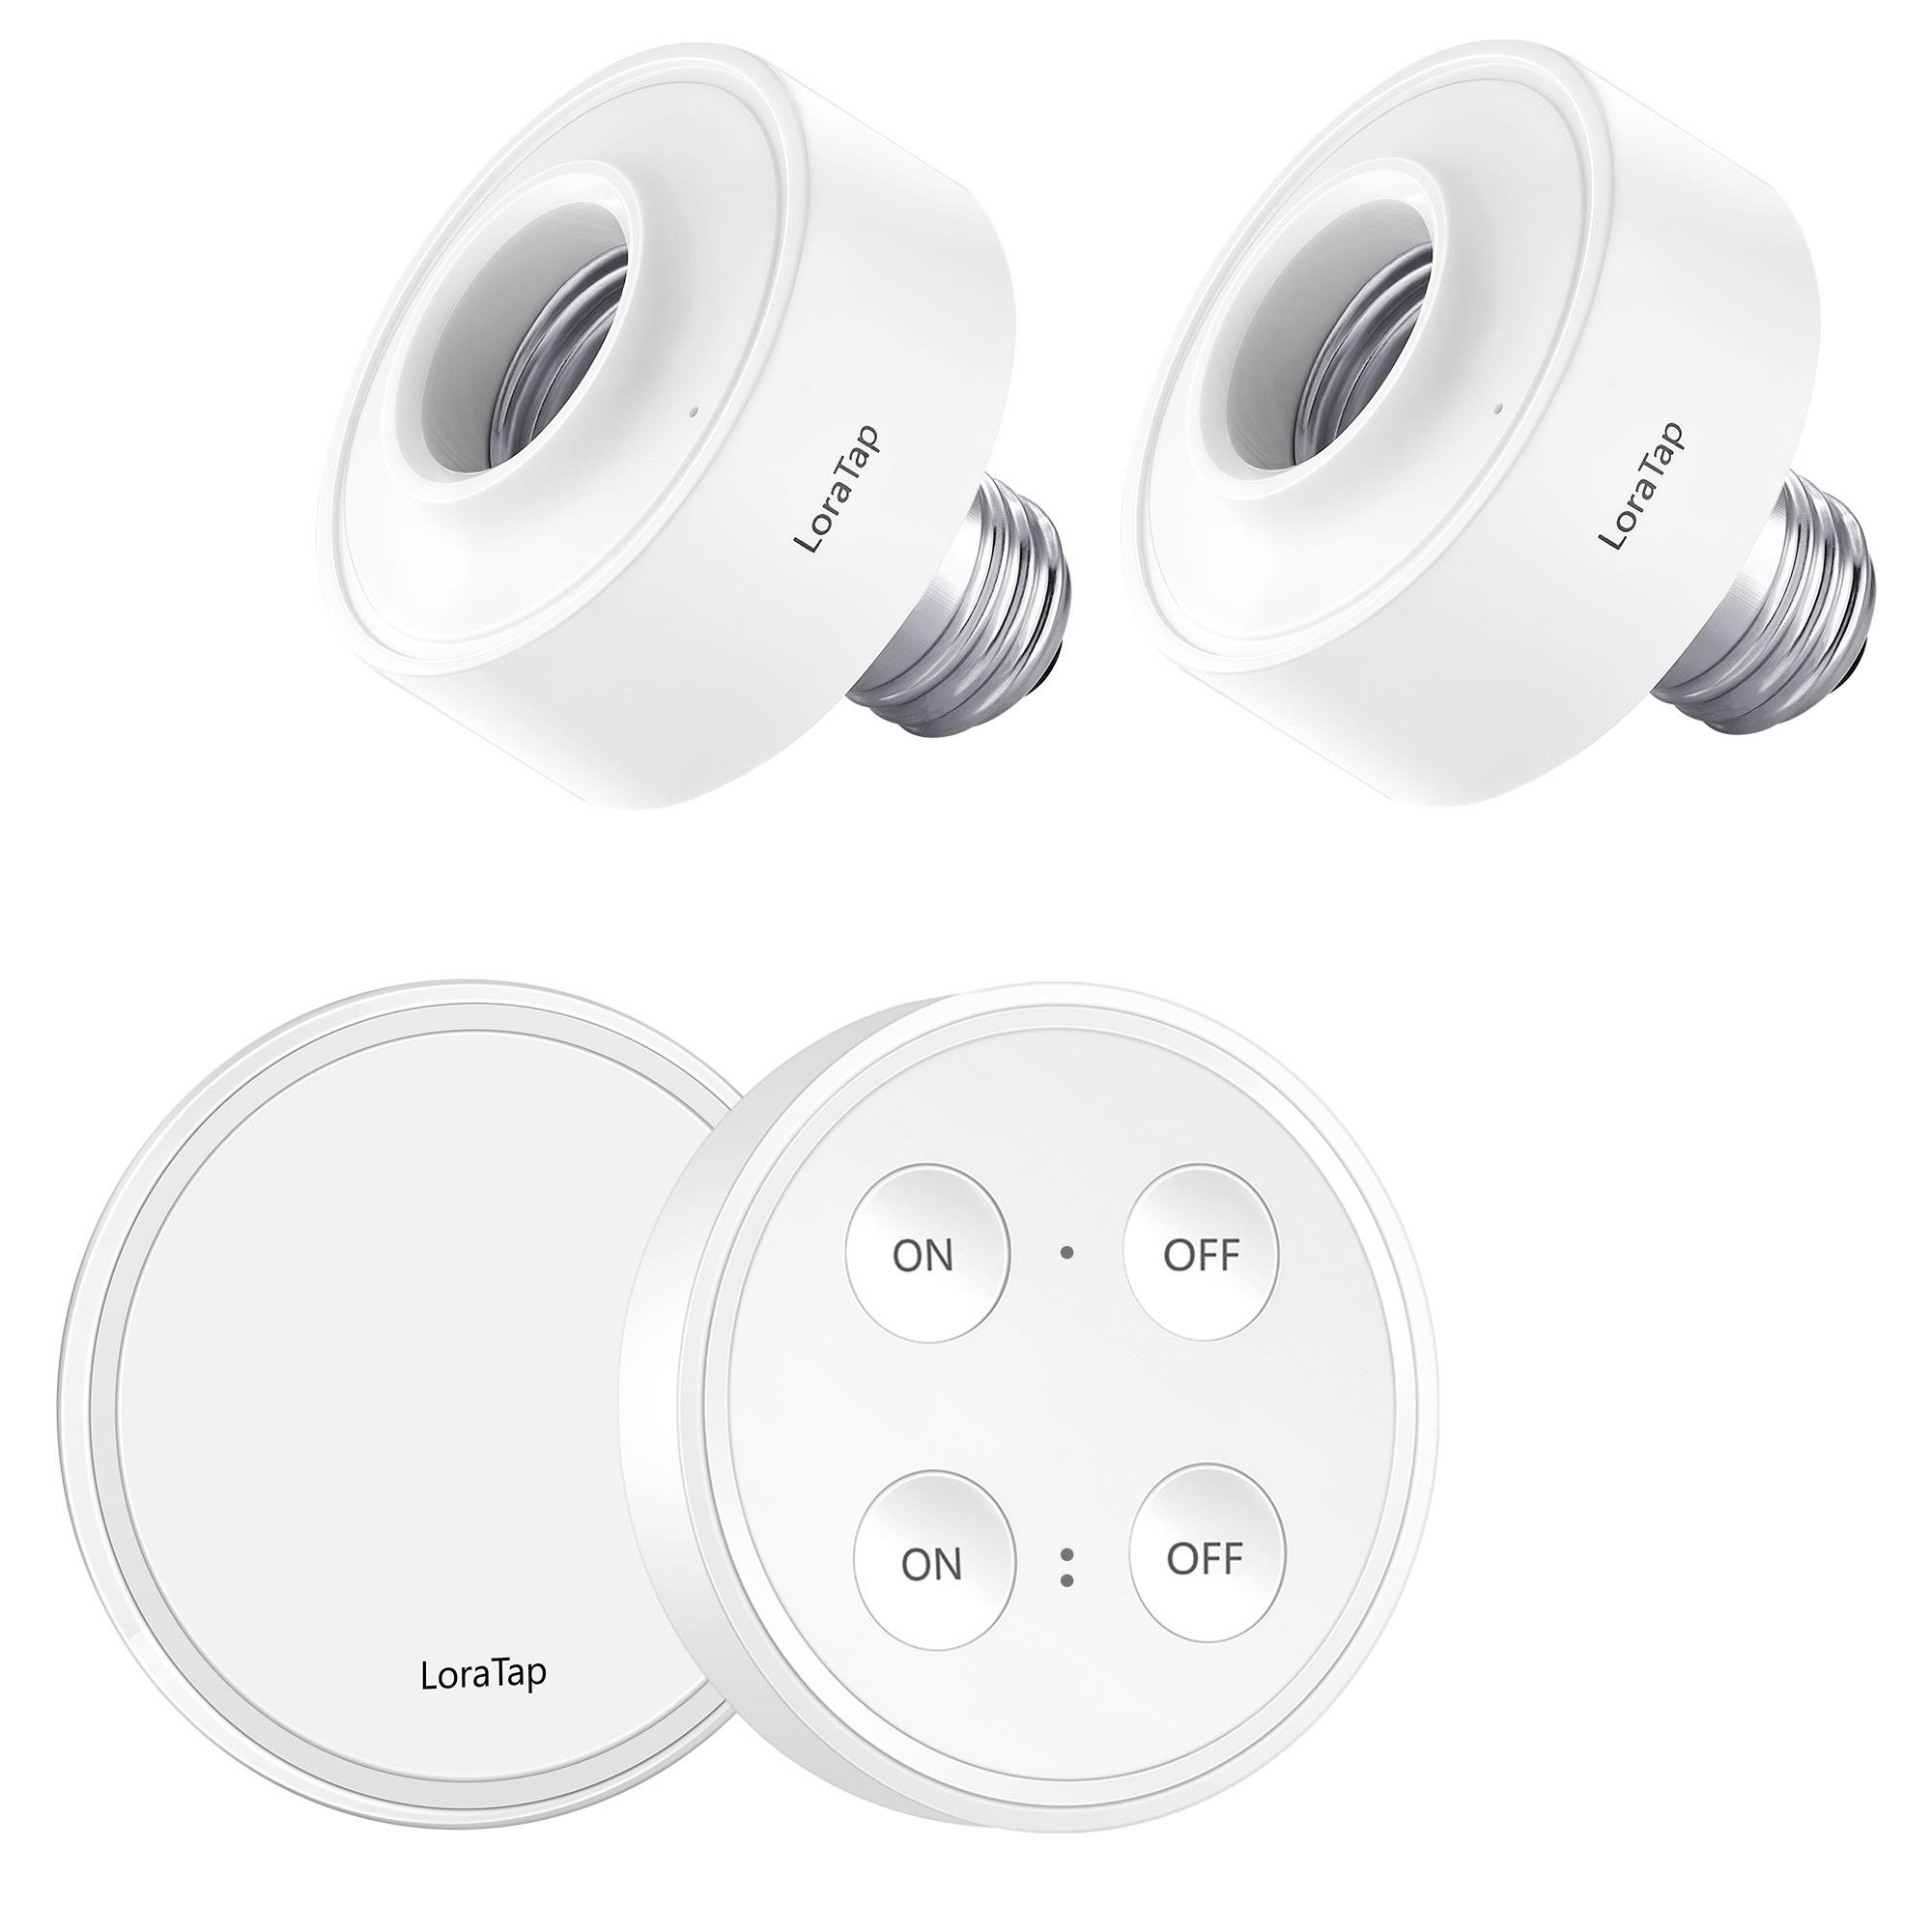 LoraTap Wireless Remote Control E26 E27 Light Socket Kit 656ft 915MHz Range On Off Switch for LED Bulbs and Fixtures, 5 Years Warranty (1pc Light Switch + 2pcs LED Lamp Holders)